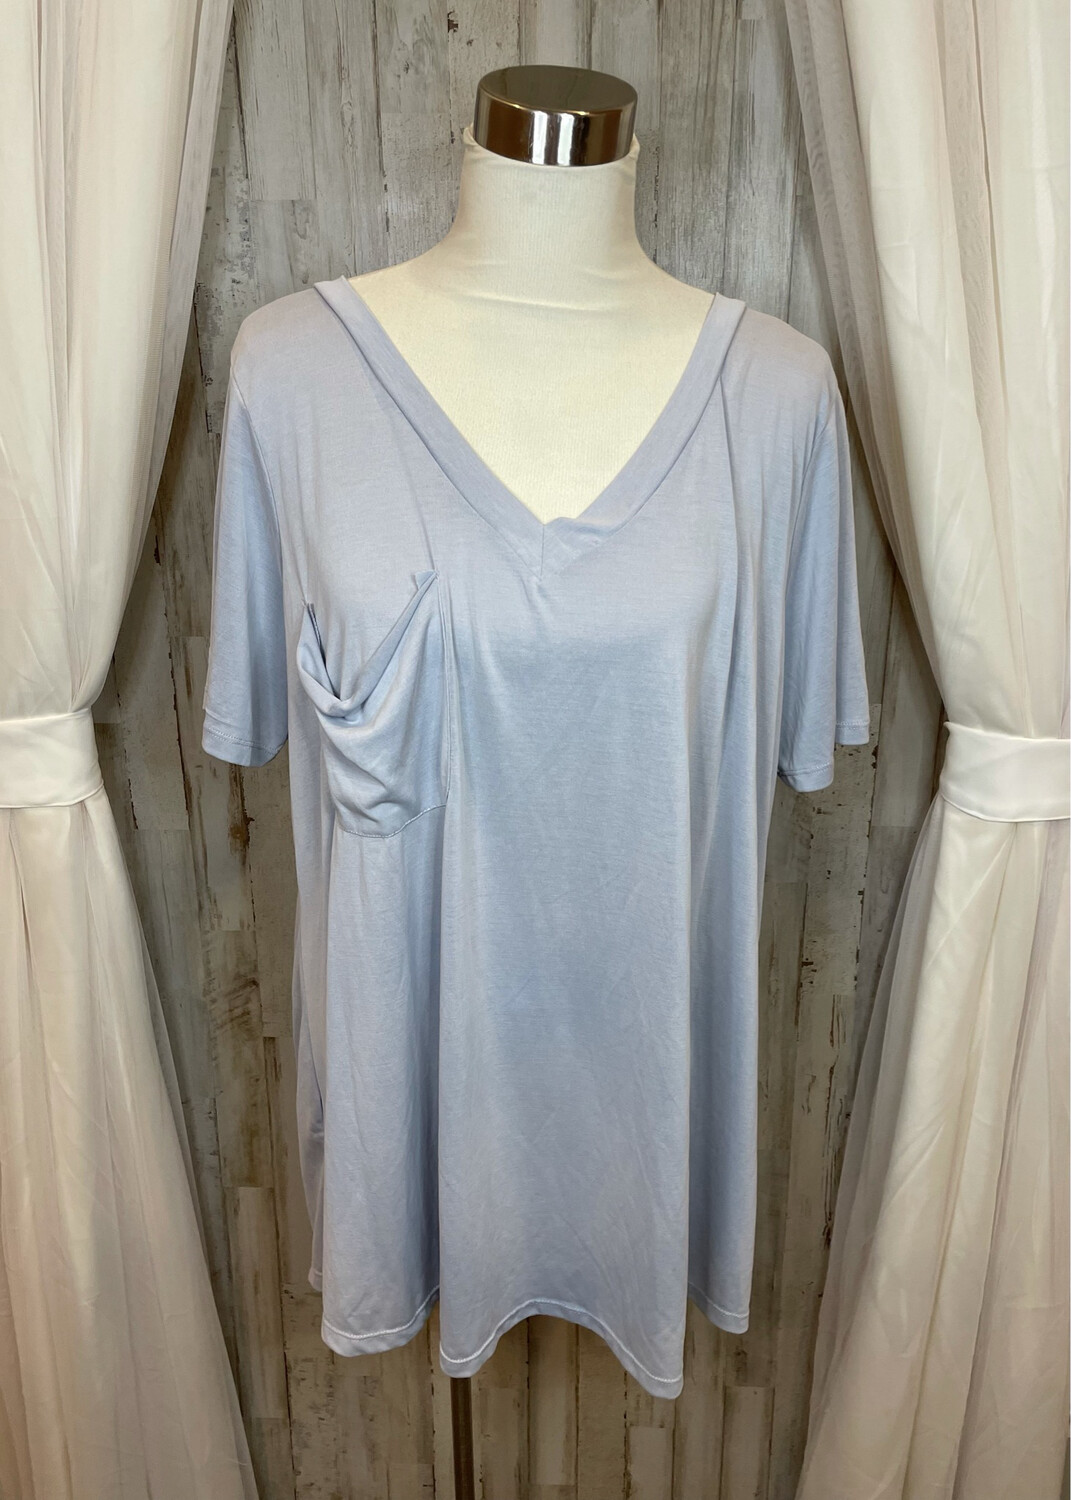 Andree By Unit Blue V-neck Top w/Pocket - 1XL